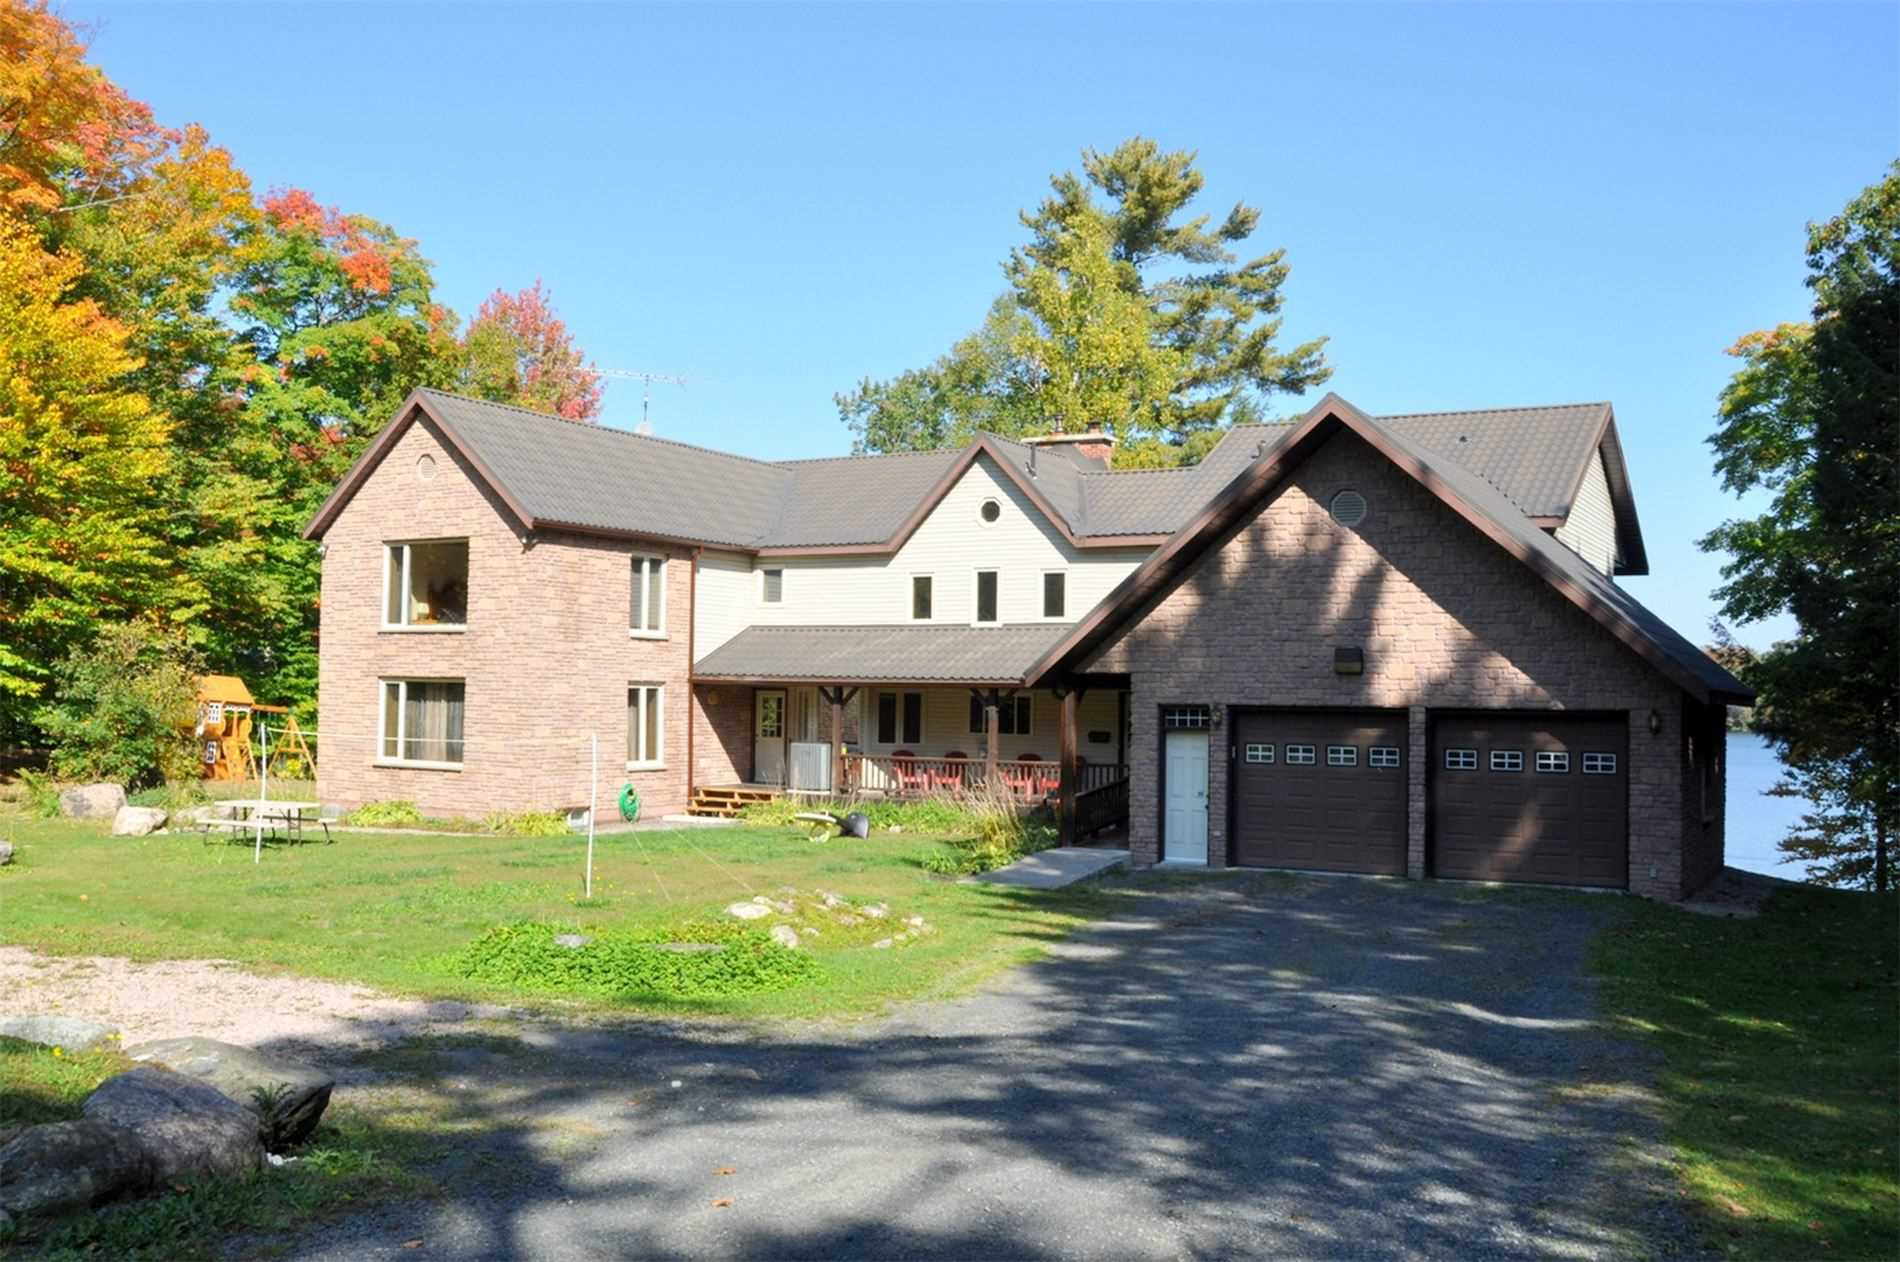 32 Old Sids Rd, Seguin, Ontario P2A 2W8, 5 Bedrooms Bedrooms, 14 Rooms Rooms,5 BathroomsBathrooms,Detached,For Sale,Old Sids,X5150164